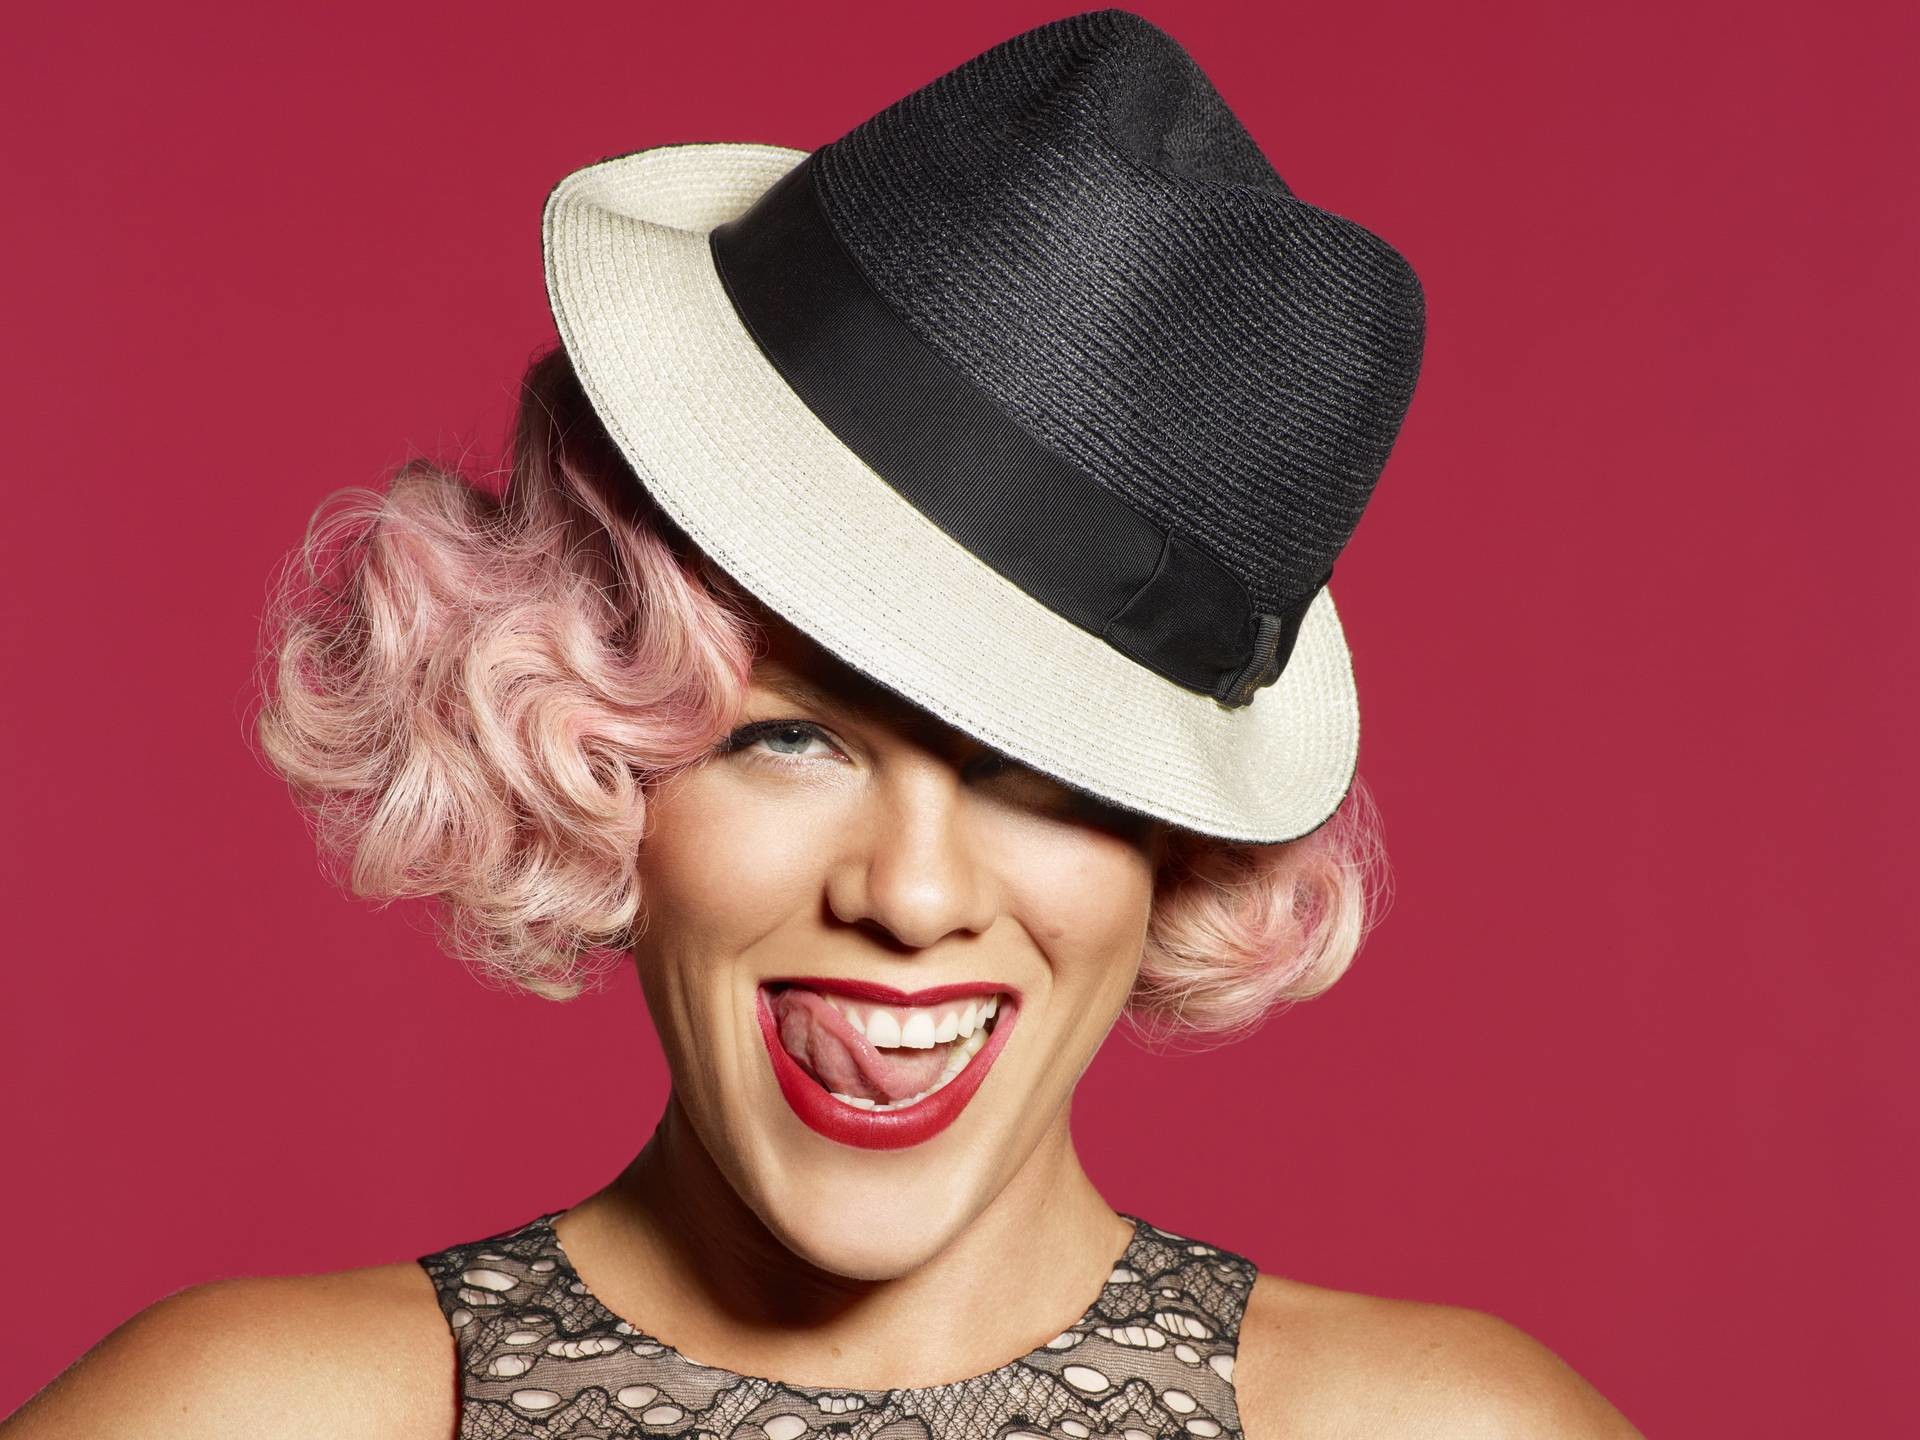 1920x1440 Pink The Singer Wallpaper 57408 Wallpaper - Res: 1024x768 - pink .